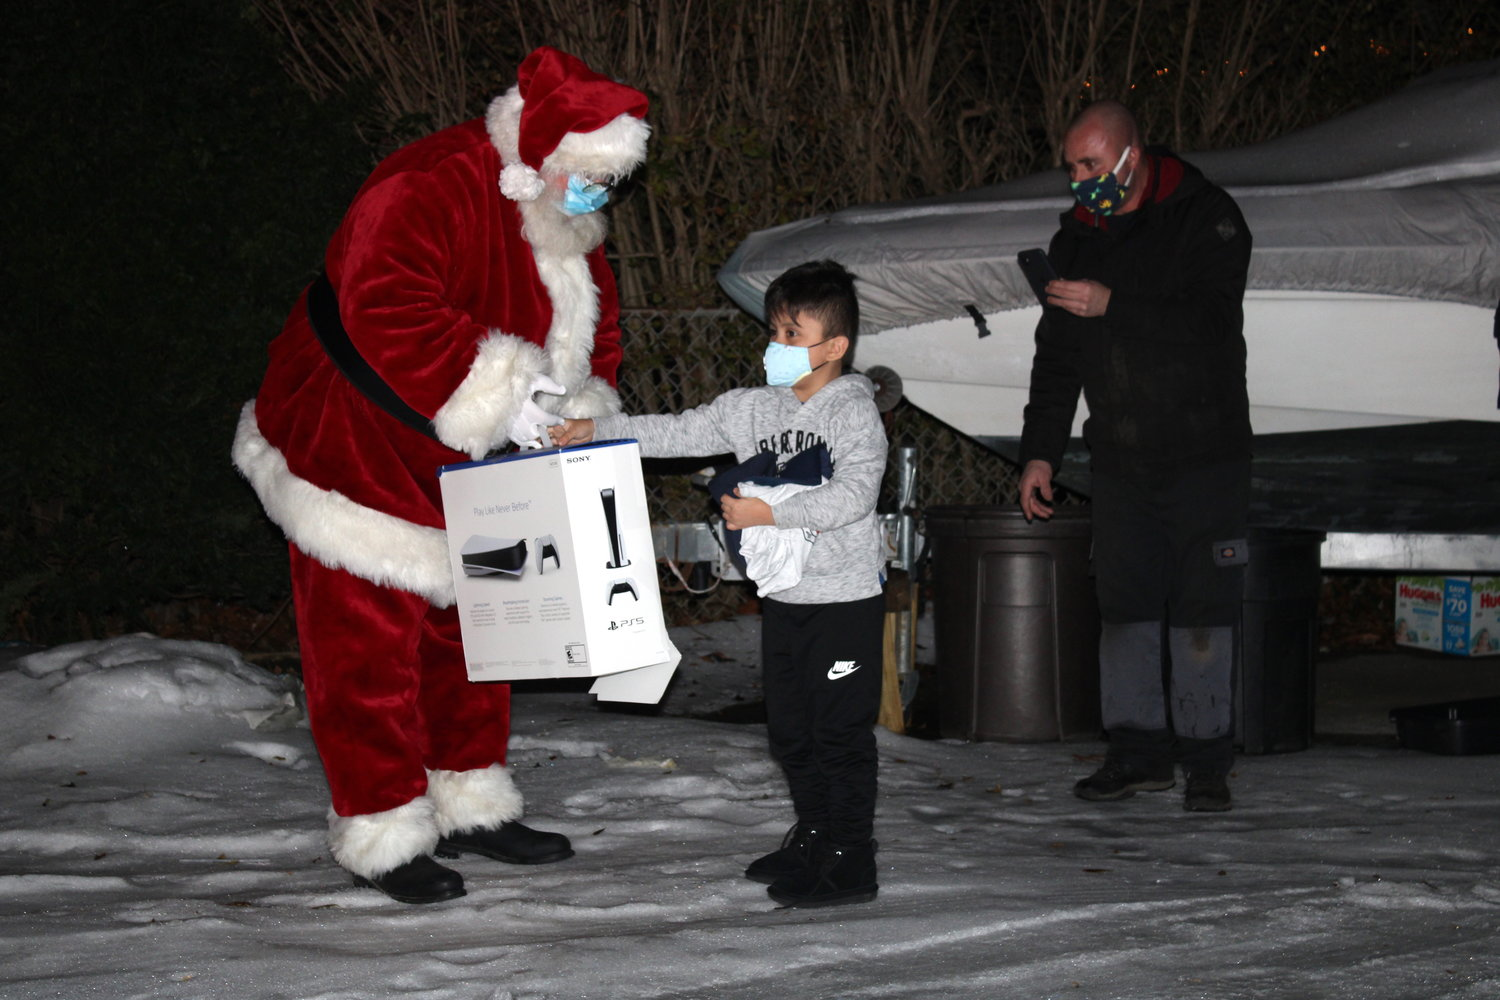 Joshua, who has cancer of the lymph tissue, had his Christmas wish granted by the Make-A-Wish Foundation Dec. 23 with help from the Mastic Beach and Mastic fire departments, the Brookhaven Fire Department, Mastic Beach Ambulance and Santa Claus.